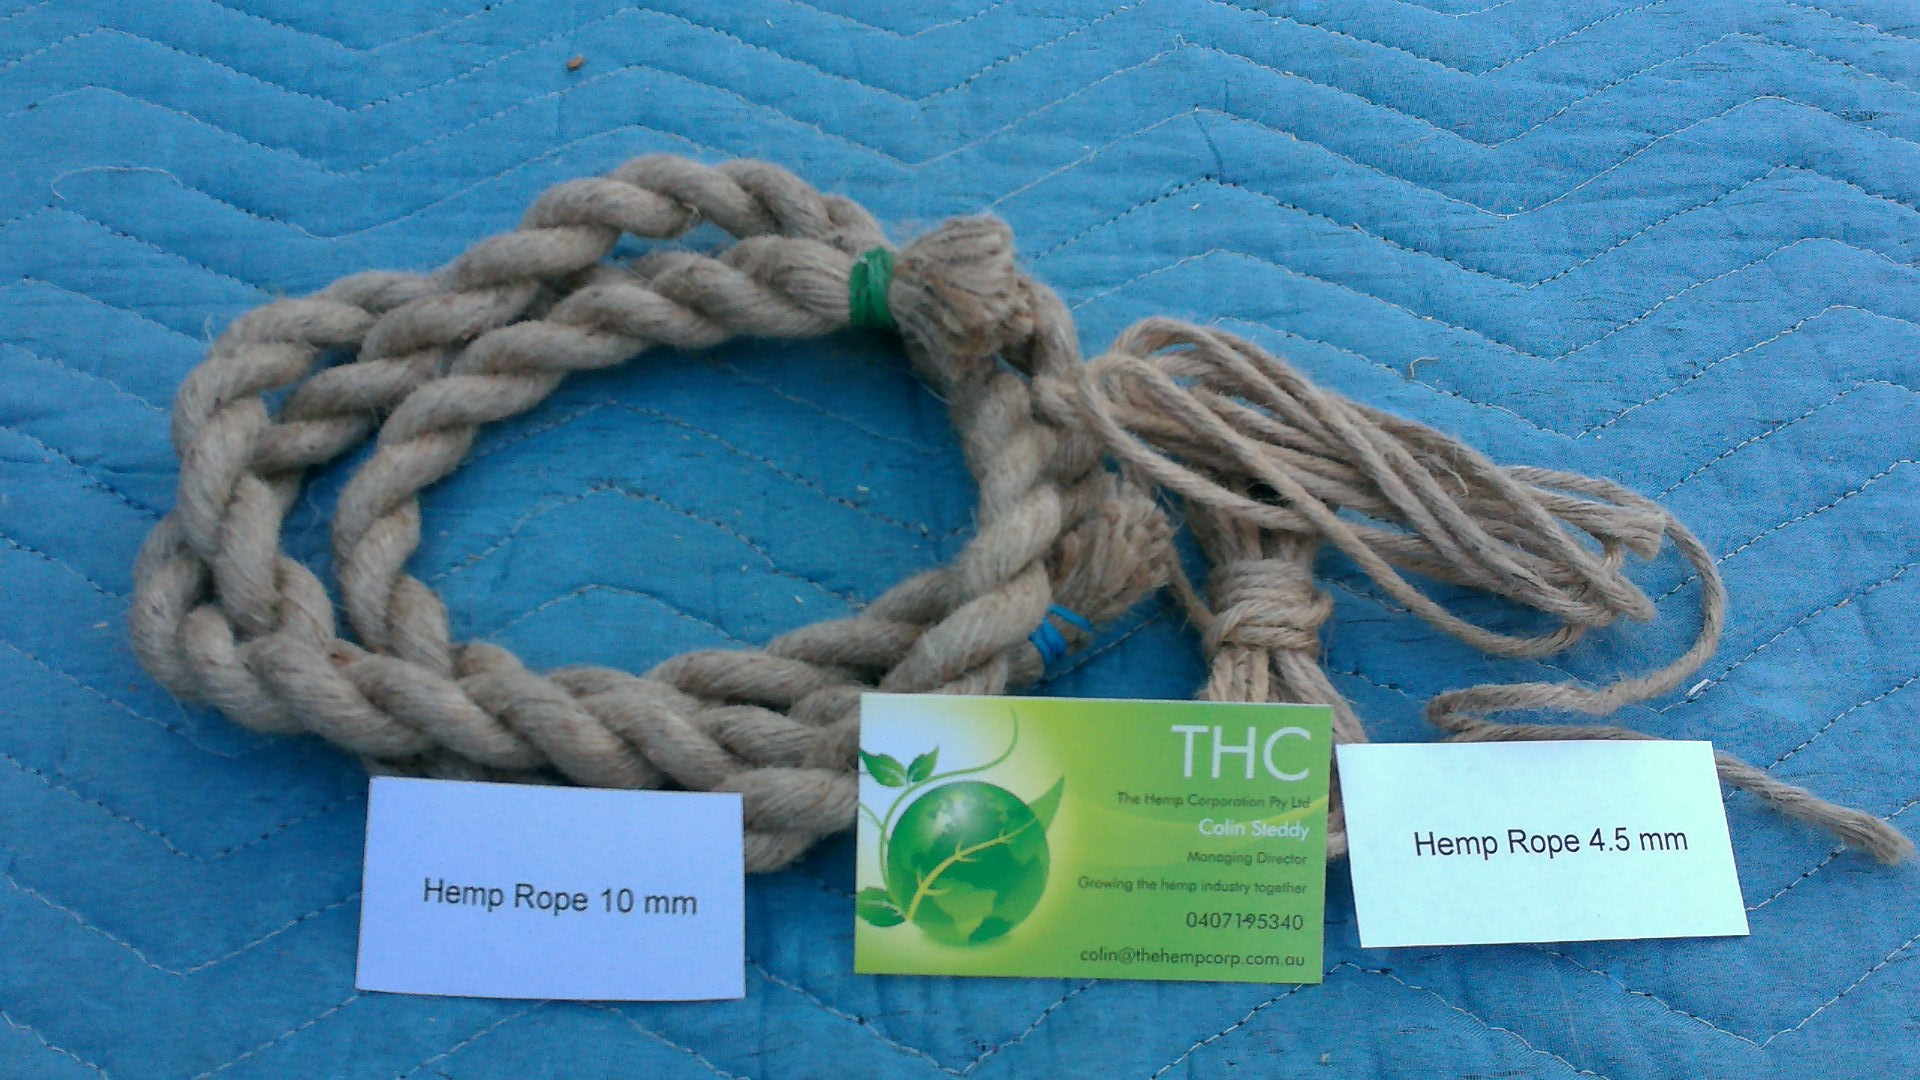 Hemp rope 10mm and 4.5mm